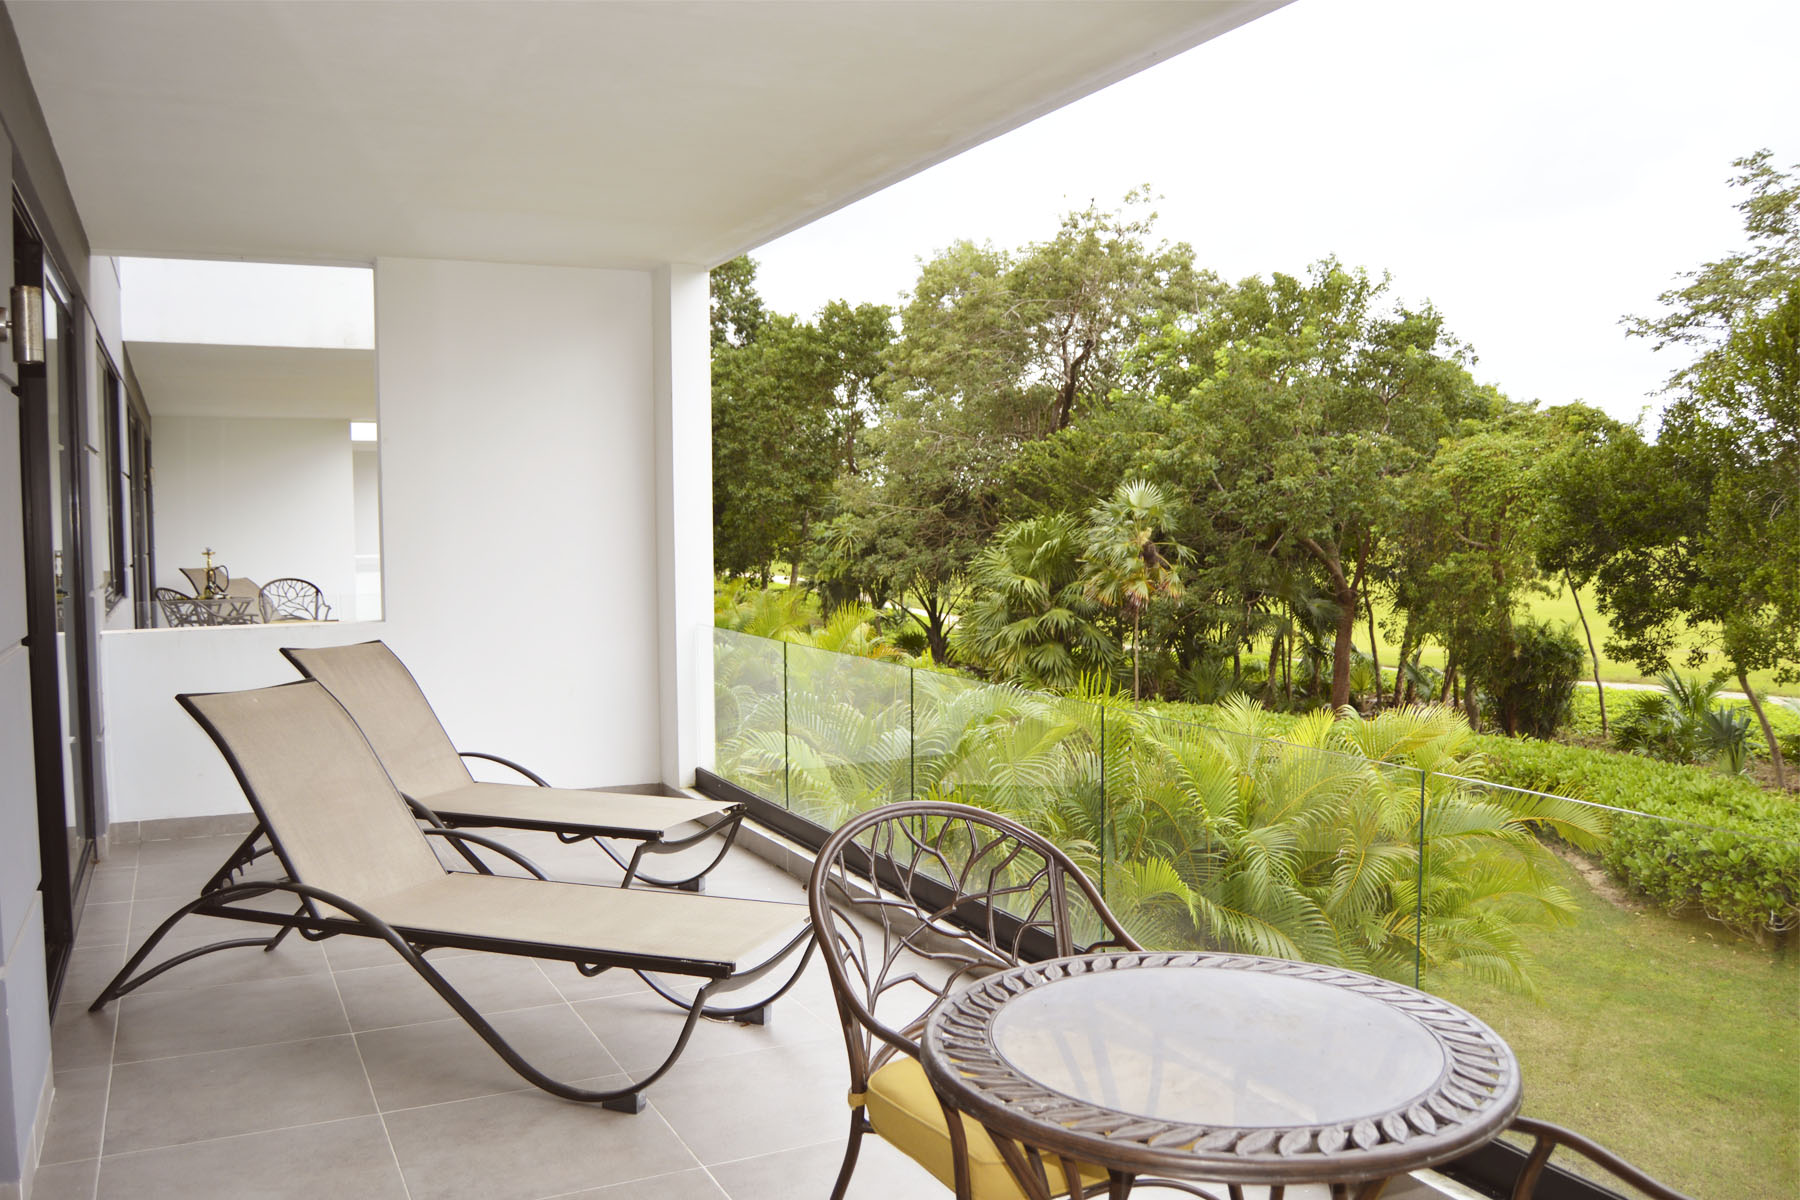 Additional photo for property listing at WHITE DIAMOND LUXURY CONDO Nick Price Lote 79, Mza 21, Region 04 Playa Del Carmen, Quintana Roo 77710 Mexico